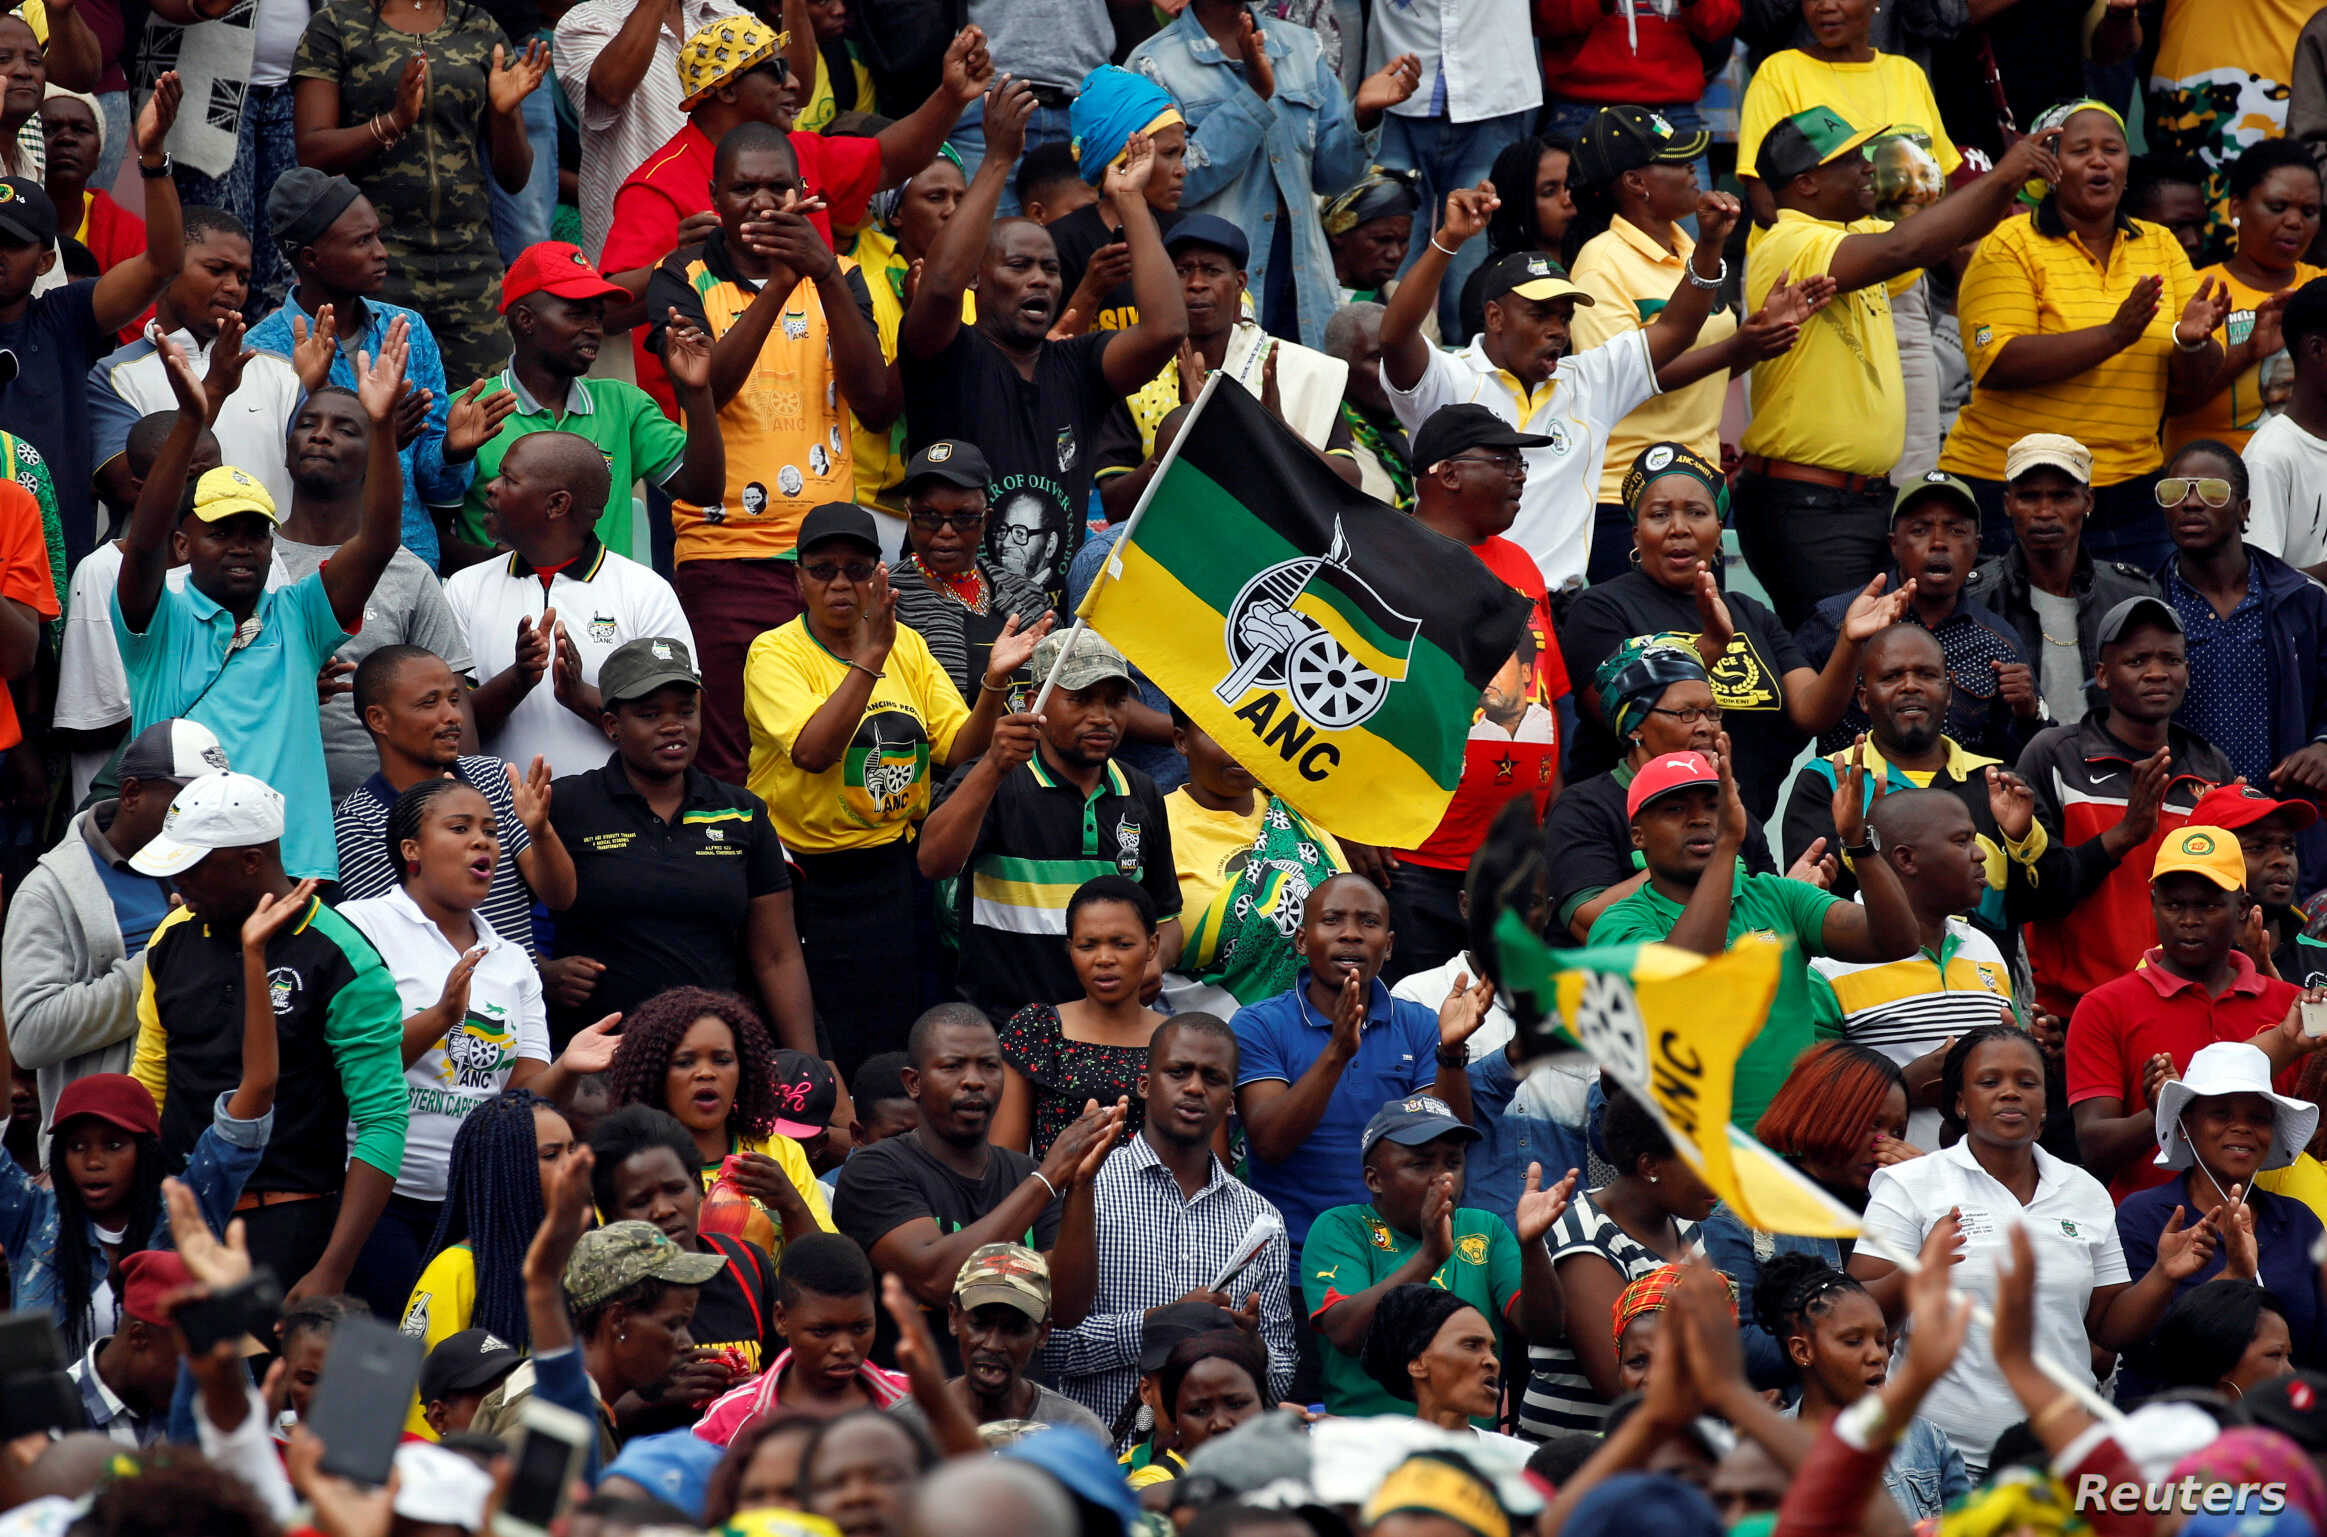 Supporters of the ANC wave a flag during the party's 106th anniversary celebrations, in East London, South Africa, Jan. 13, 2018.